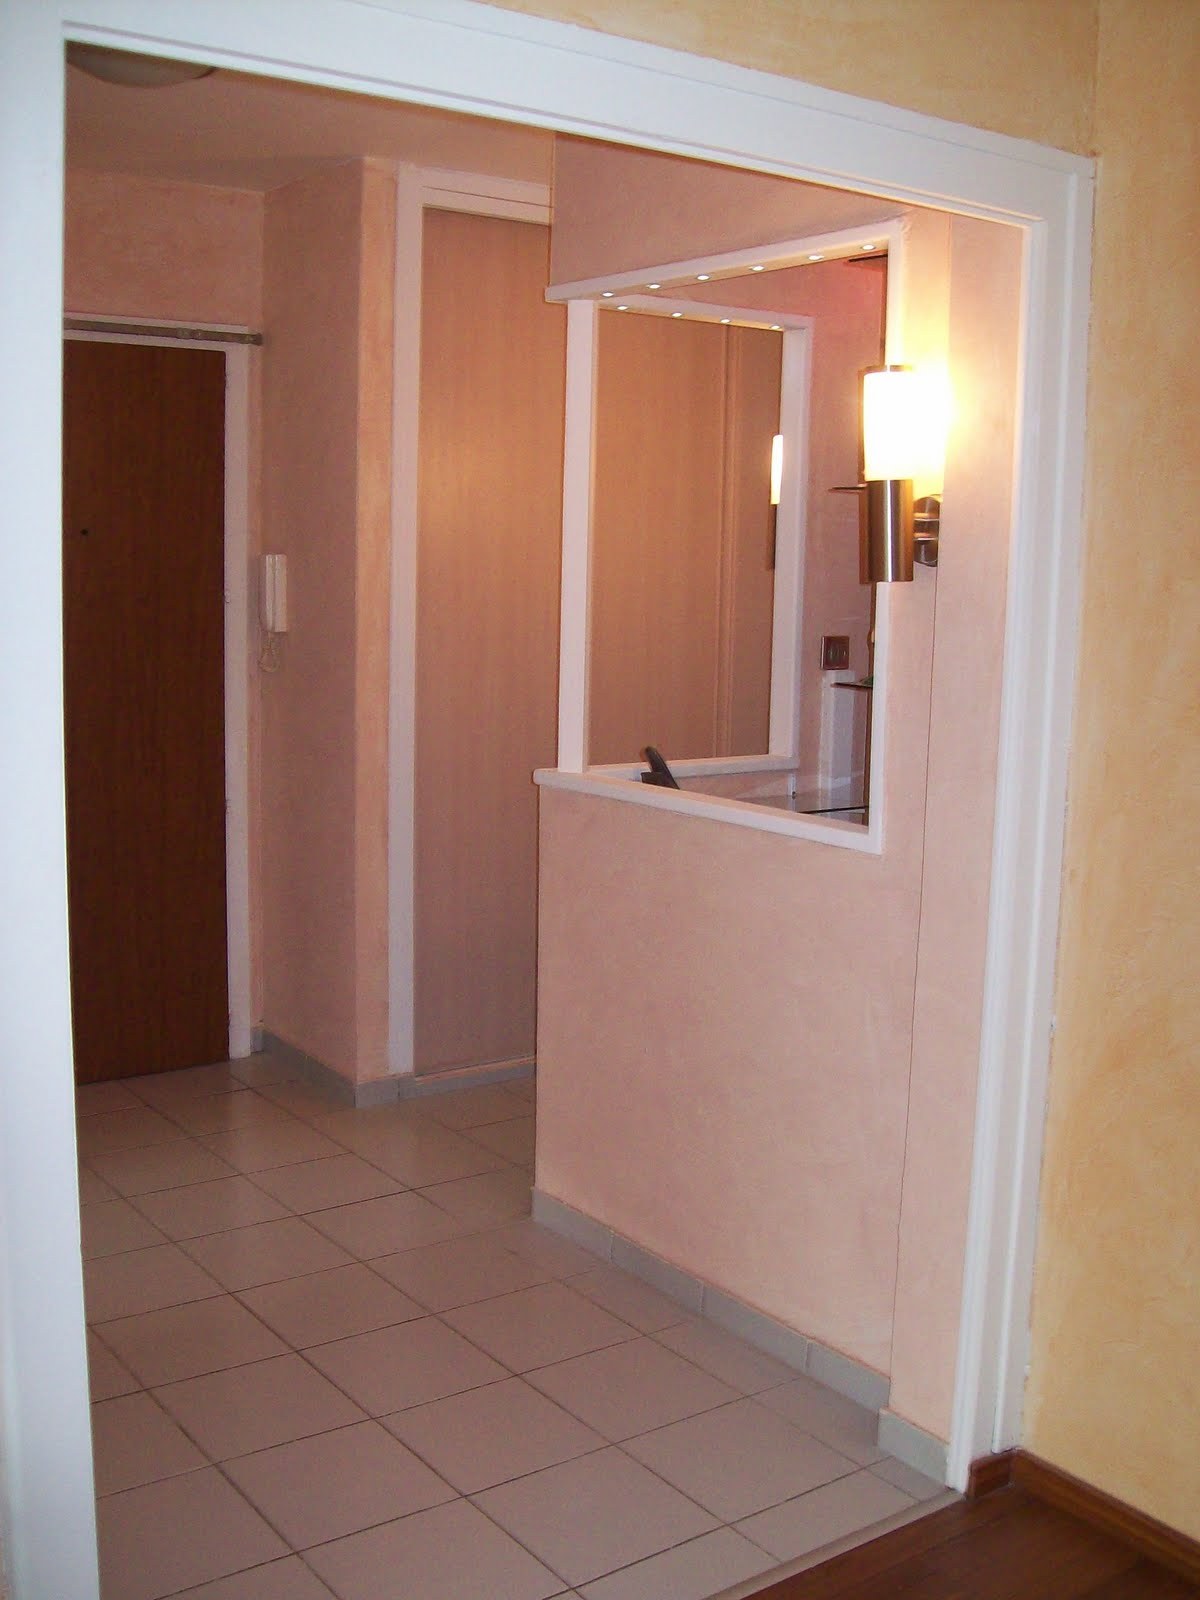 Vente appartement t 4 85m2 l 39 entr e le couloir et le bureau for Couloir appartement